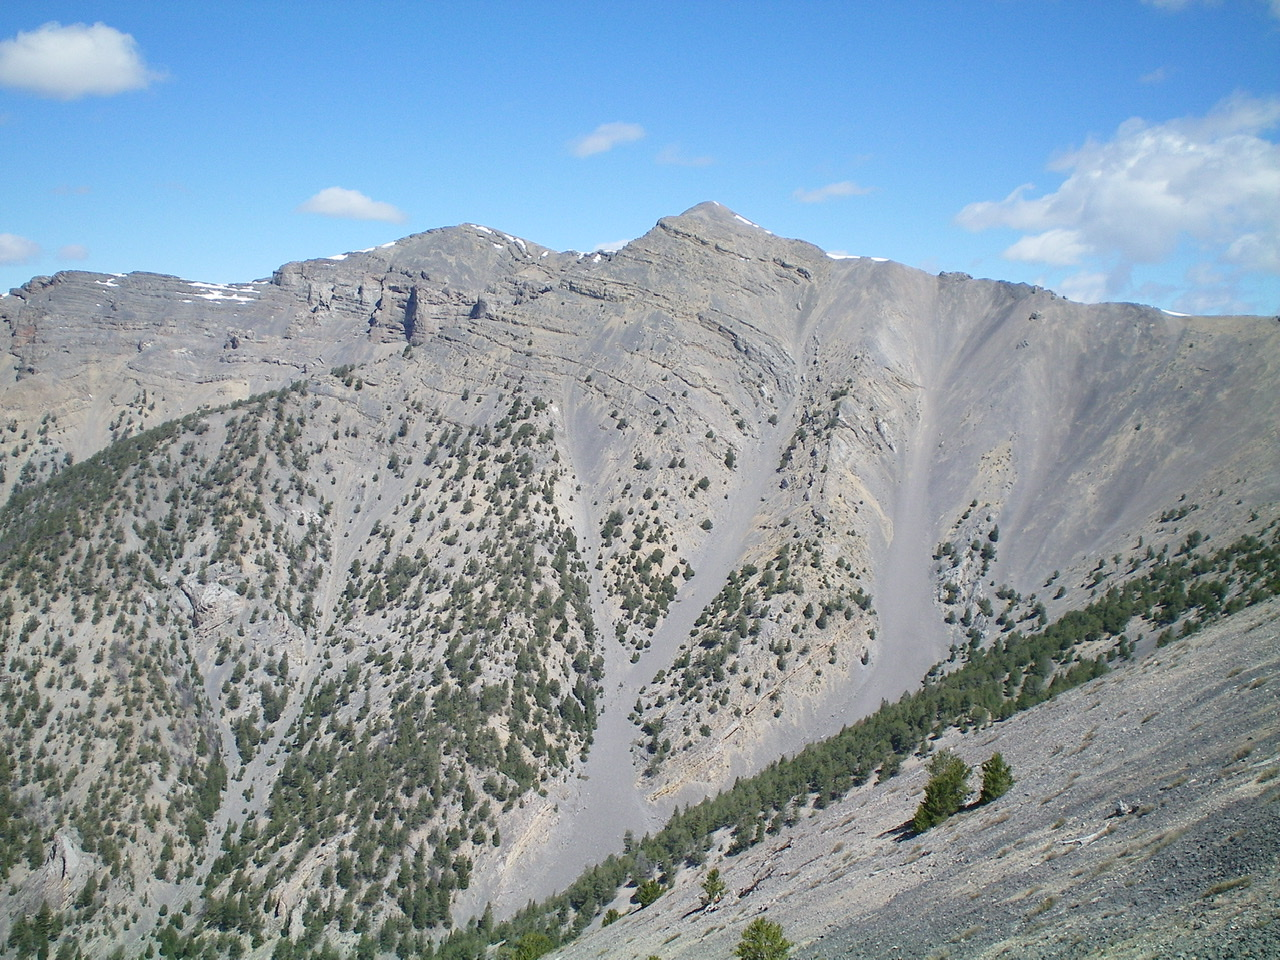 Point 10601 (slightly right of center), the South Ridge (descending leftward), and the crumbly scree/gravel that must be navigated on the Southeast Face to descend the steps/breaks in the ridge. Watch your step up here! Livingston Douglas Photo